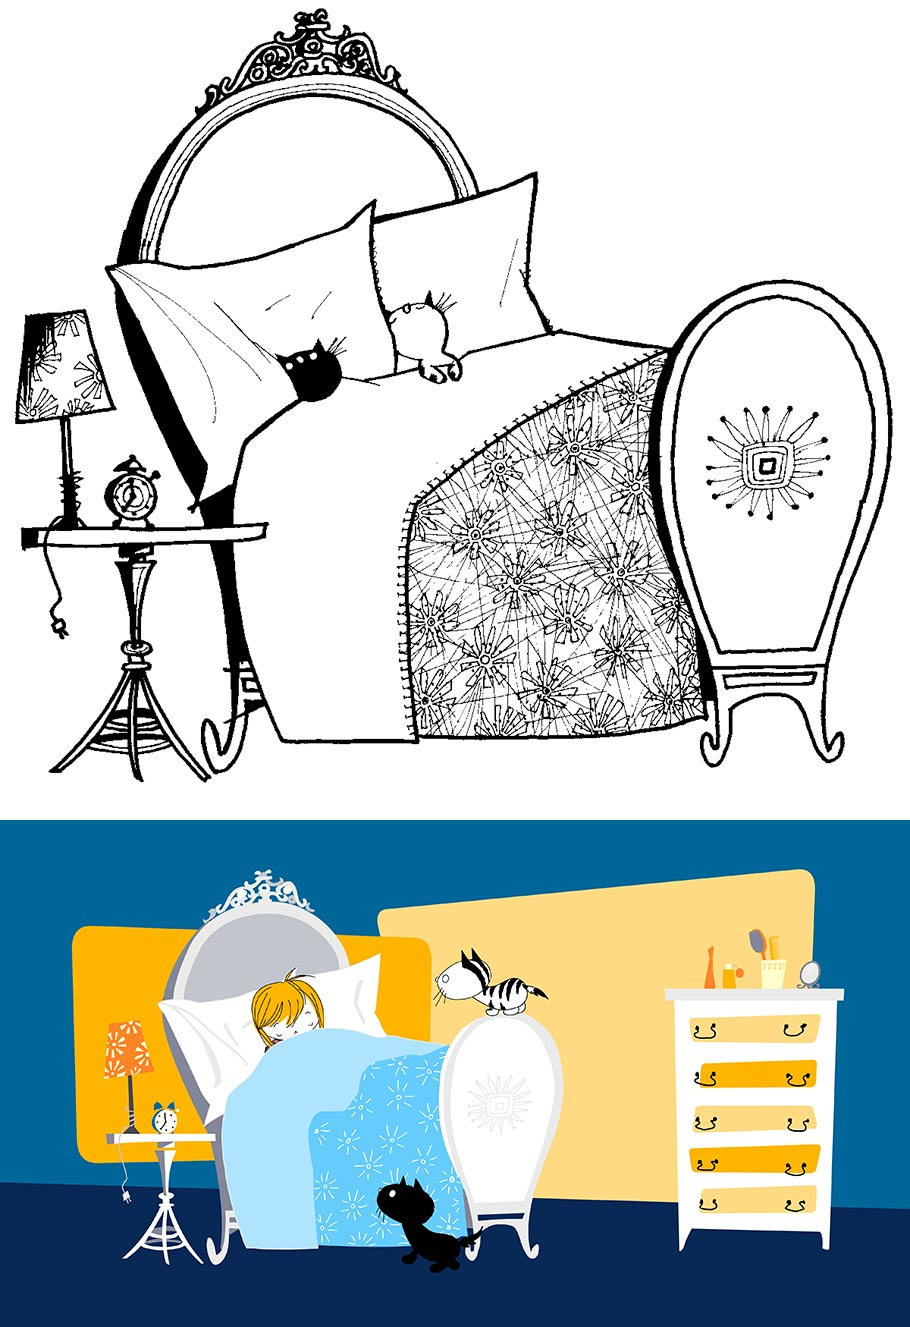 "Top: Original ""Pim and Pom"" drawing by Fiep Westendorp (ca. 1967, ©Fiep Amsterdam bv, Fiep Westendorp Illustrations); bottom: Still from the movie ""Pim and Pom: The Big Adventure"" (2014)"